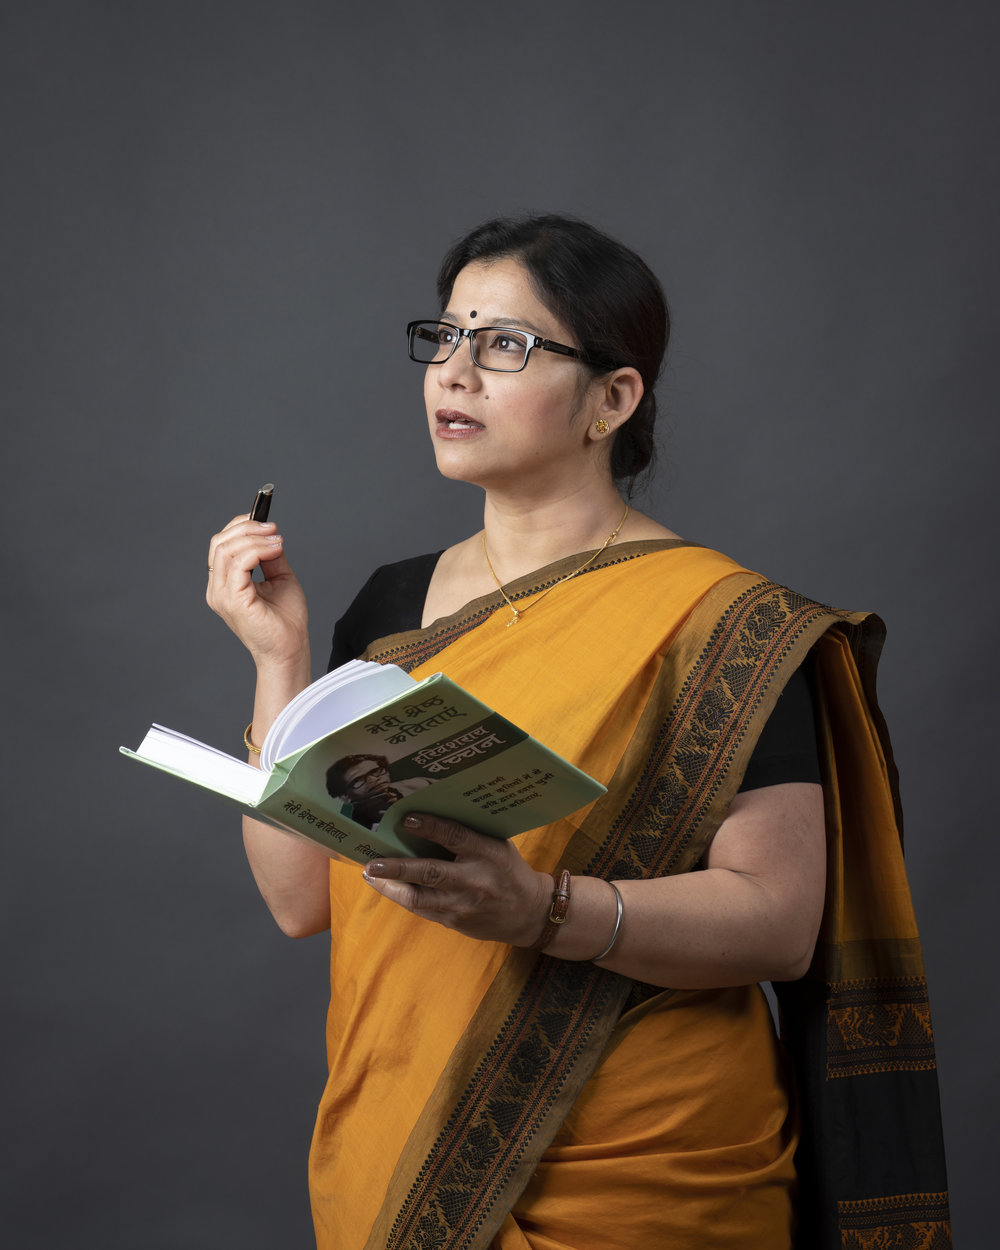 Anindita Mukherjee as ARUNA. PC: Ashima Yadava